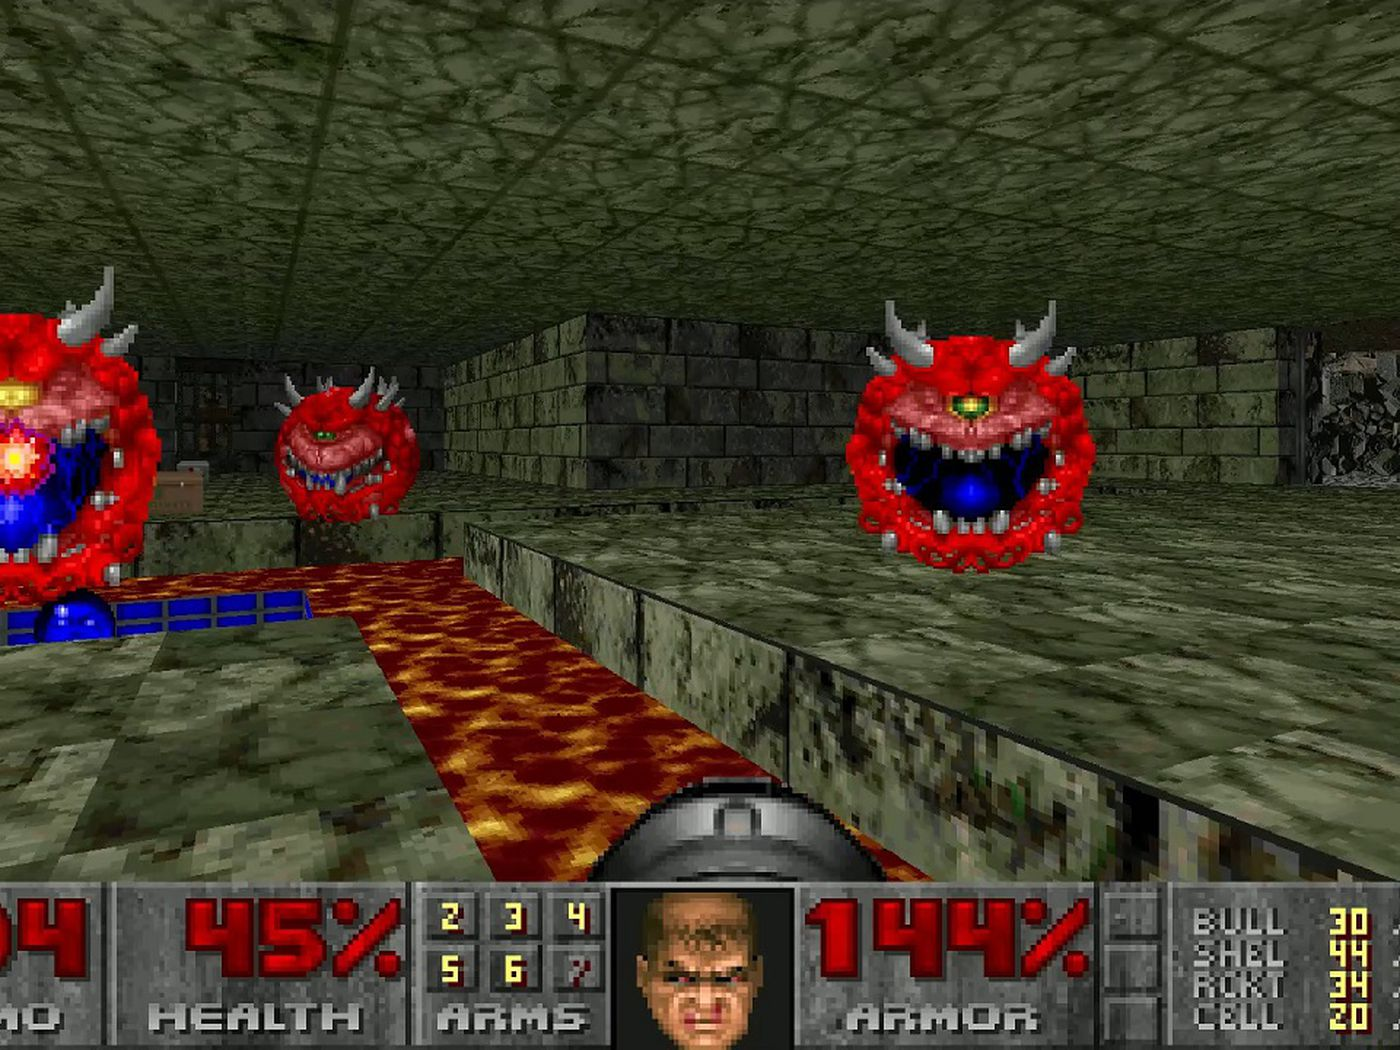 Classic Doom releases require an online account, leading to